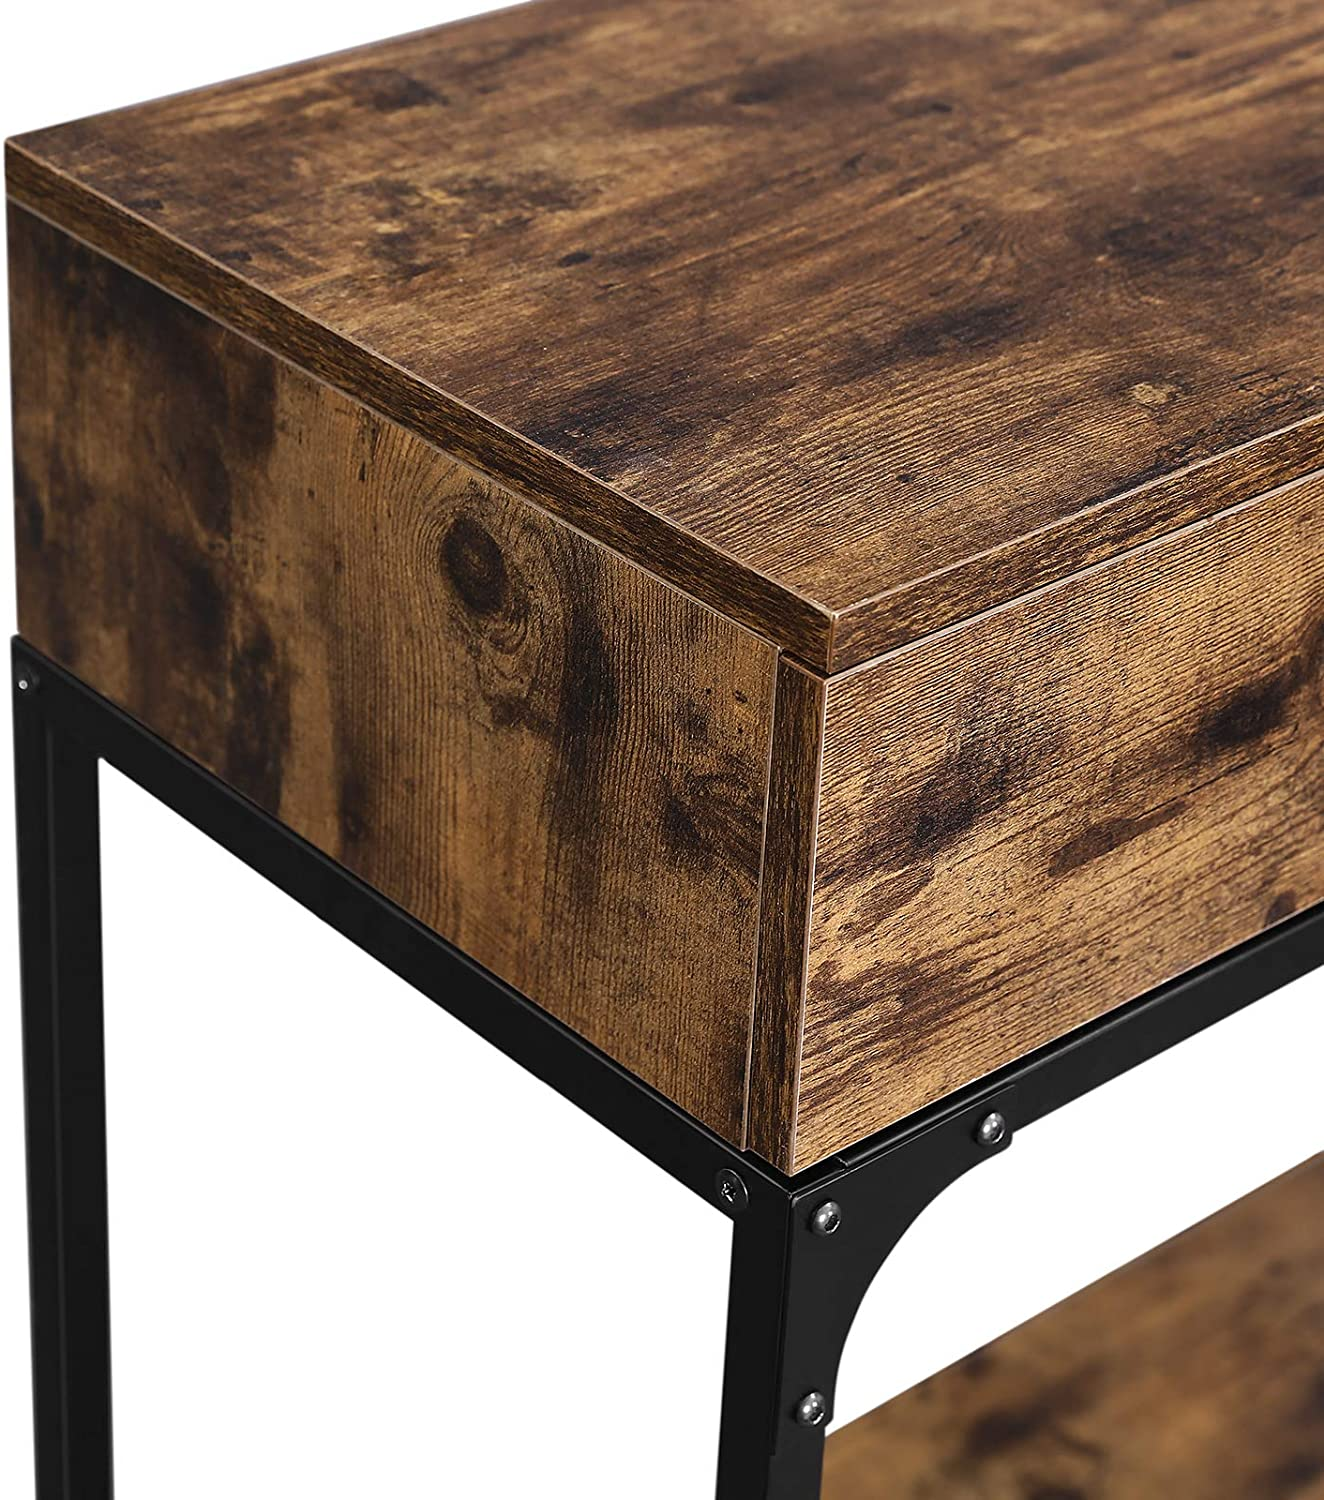 Wood Grain Sideboard